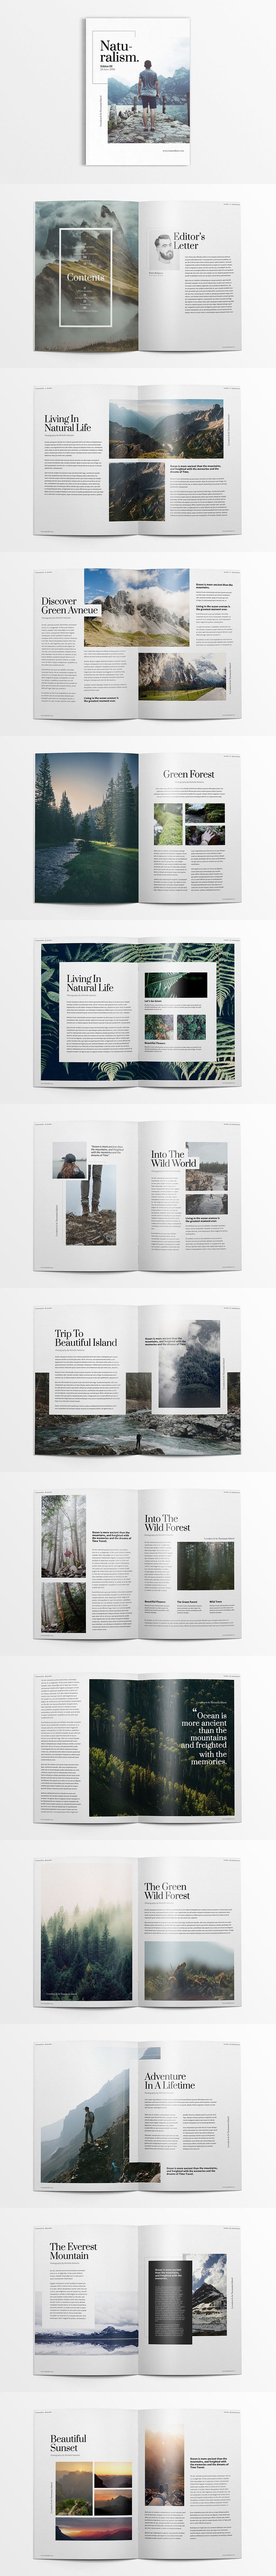 Creative and Minimalist Magazine Template Adobe InDesign INDD